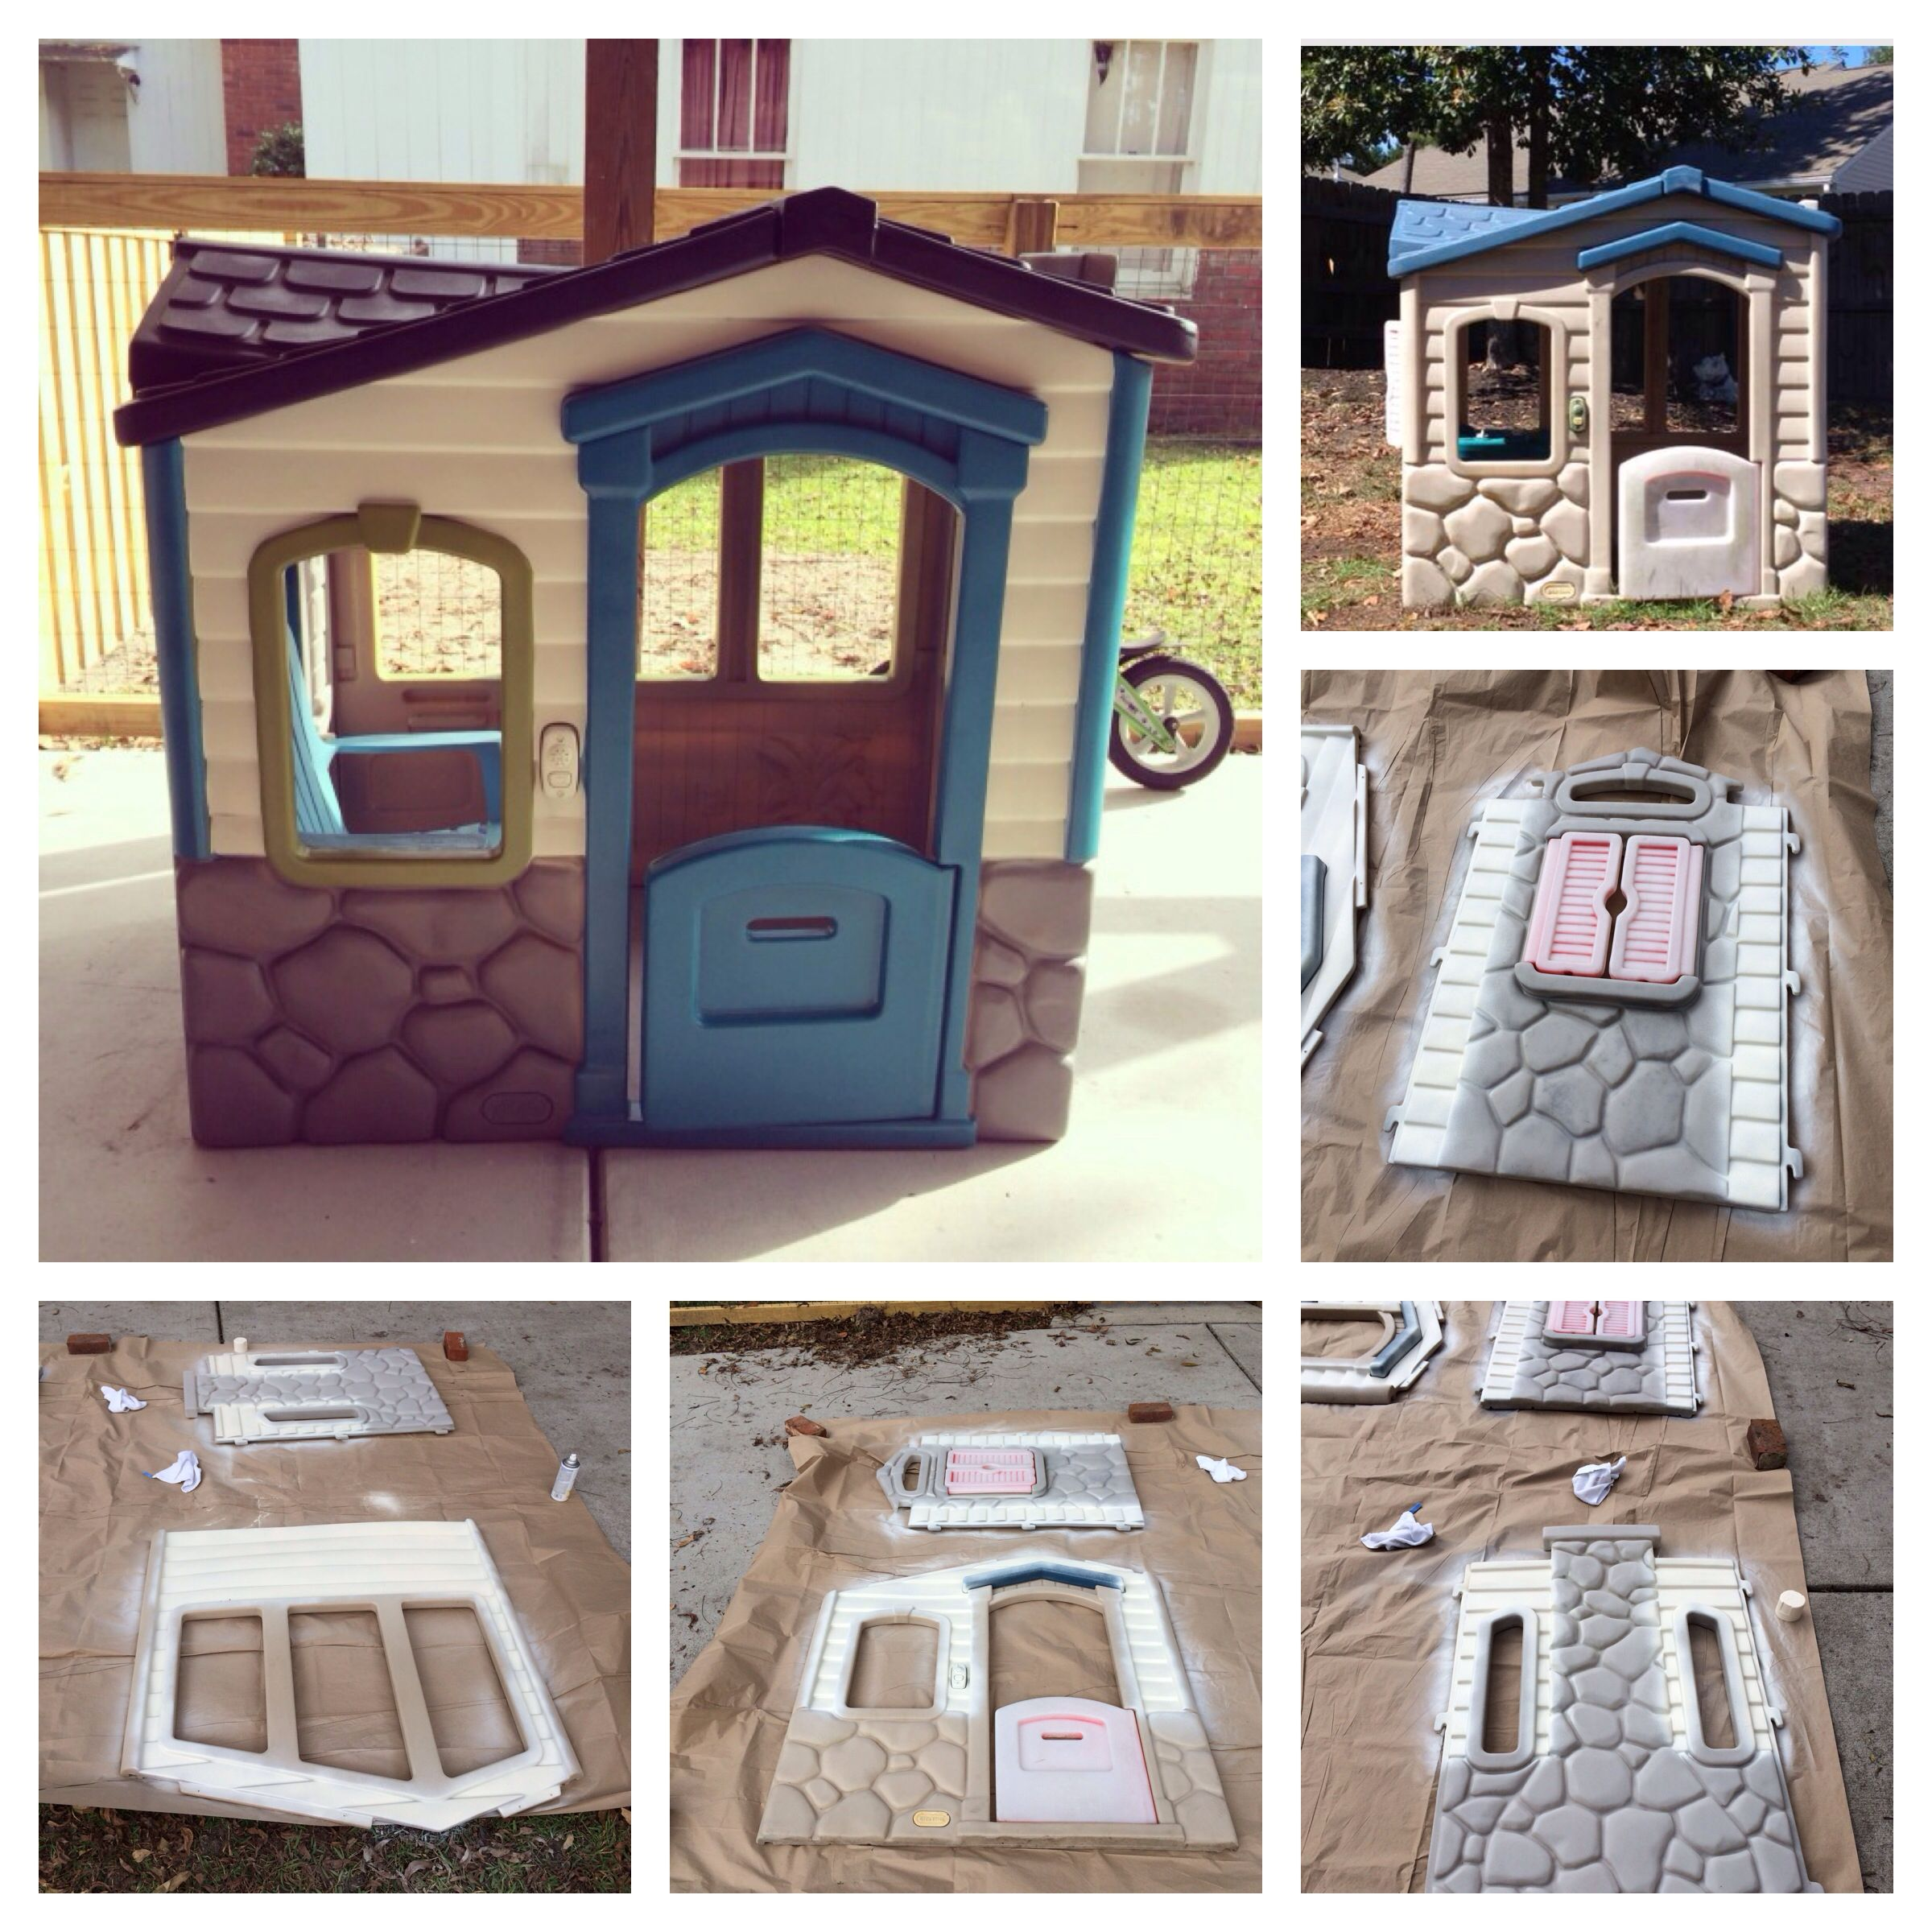 My little tikes playhouse transformation Rustoleum 2X spray paint